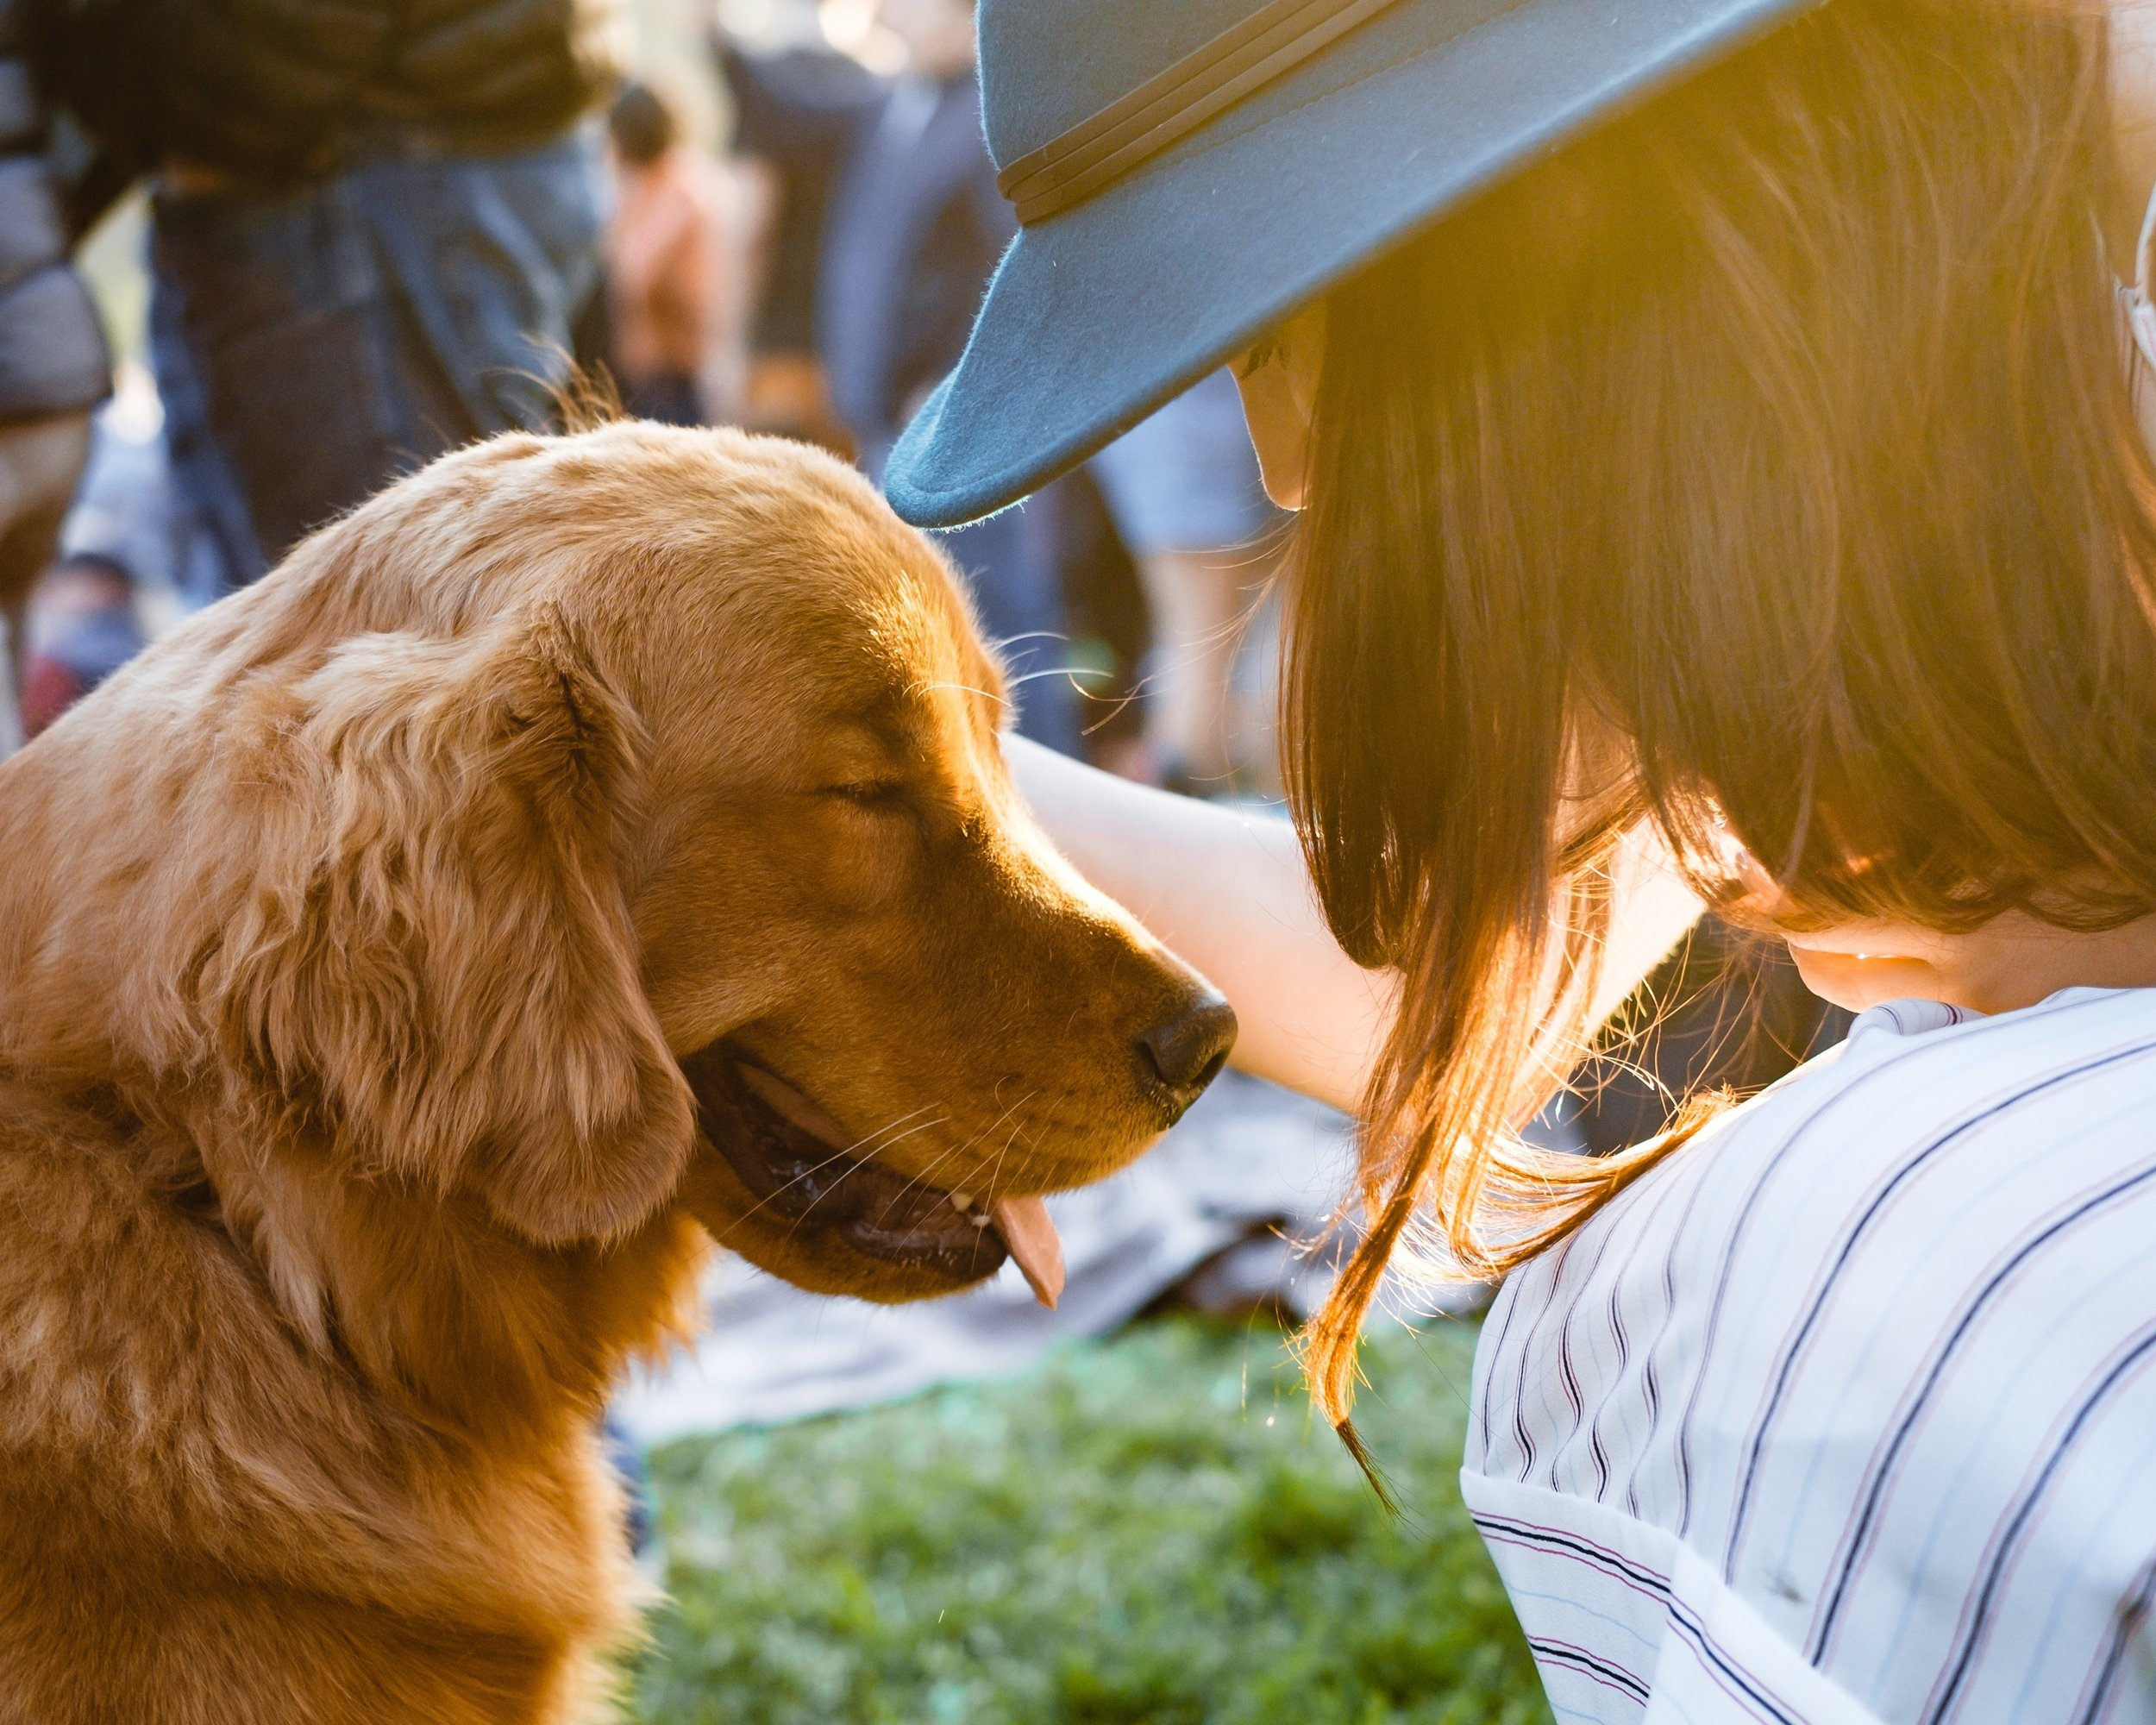 The right care for your pet. - At Goulburn Vet Clinic we work with you to care for your pet.We have longer consults, a caring team, modern technology, and no-nonsense preventative care to keep your best friend healthy and happy.